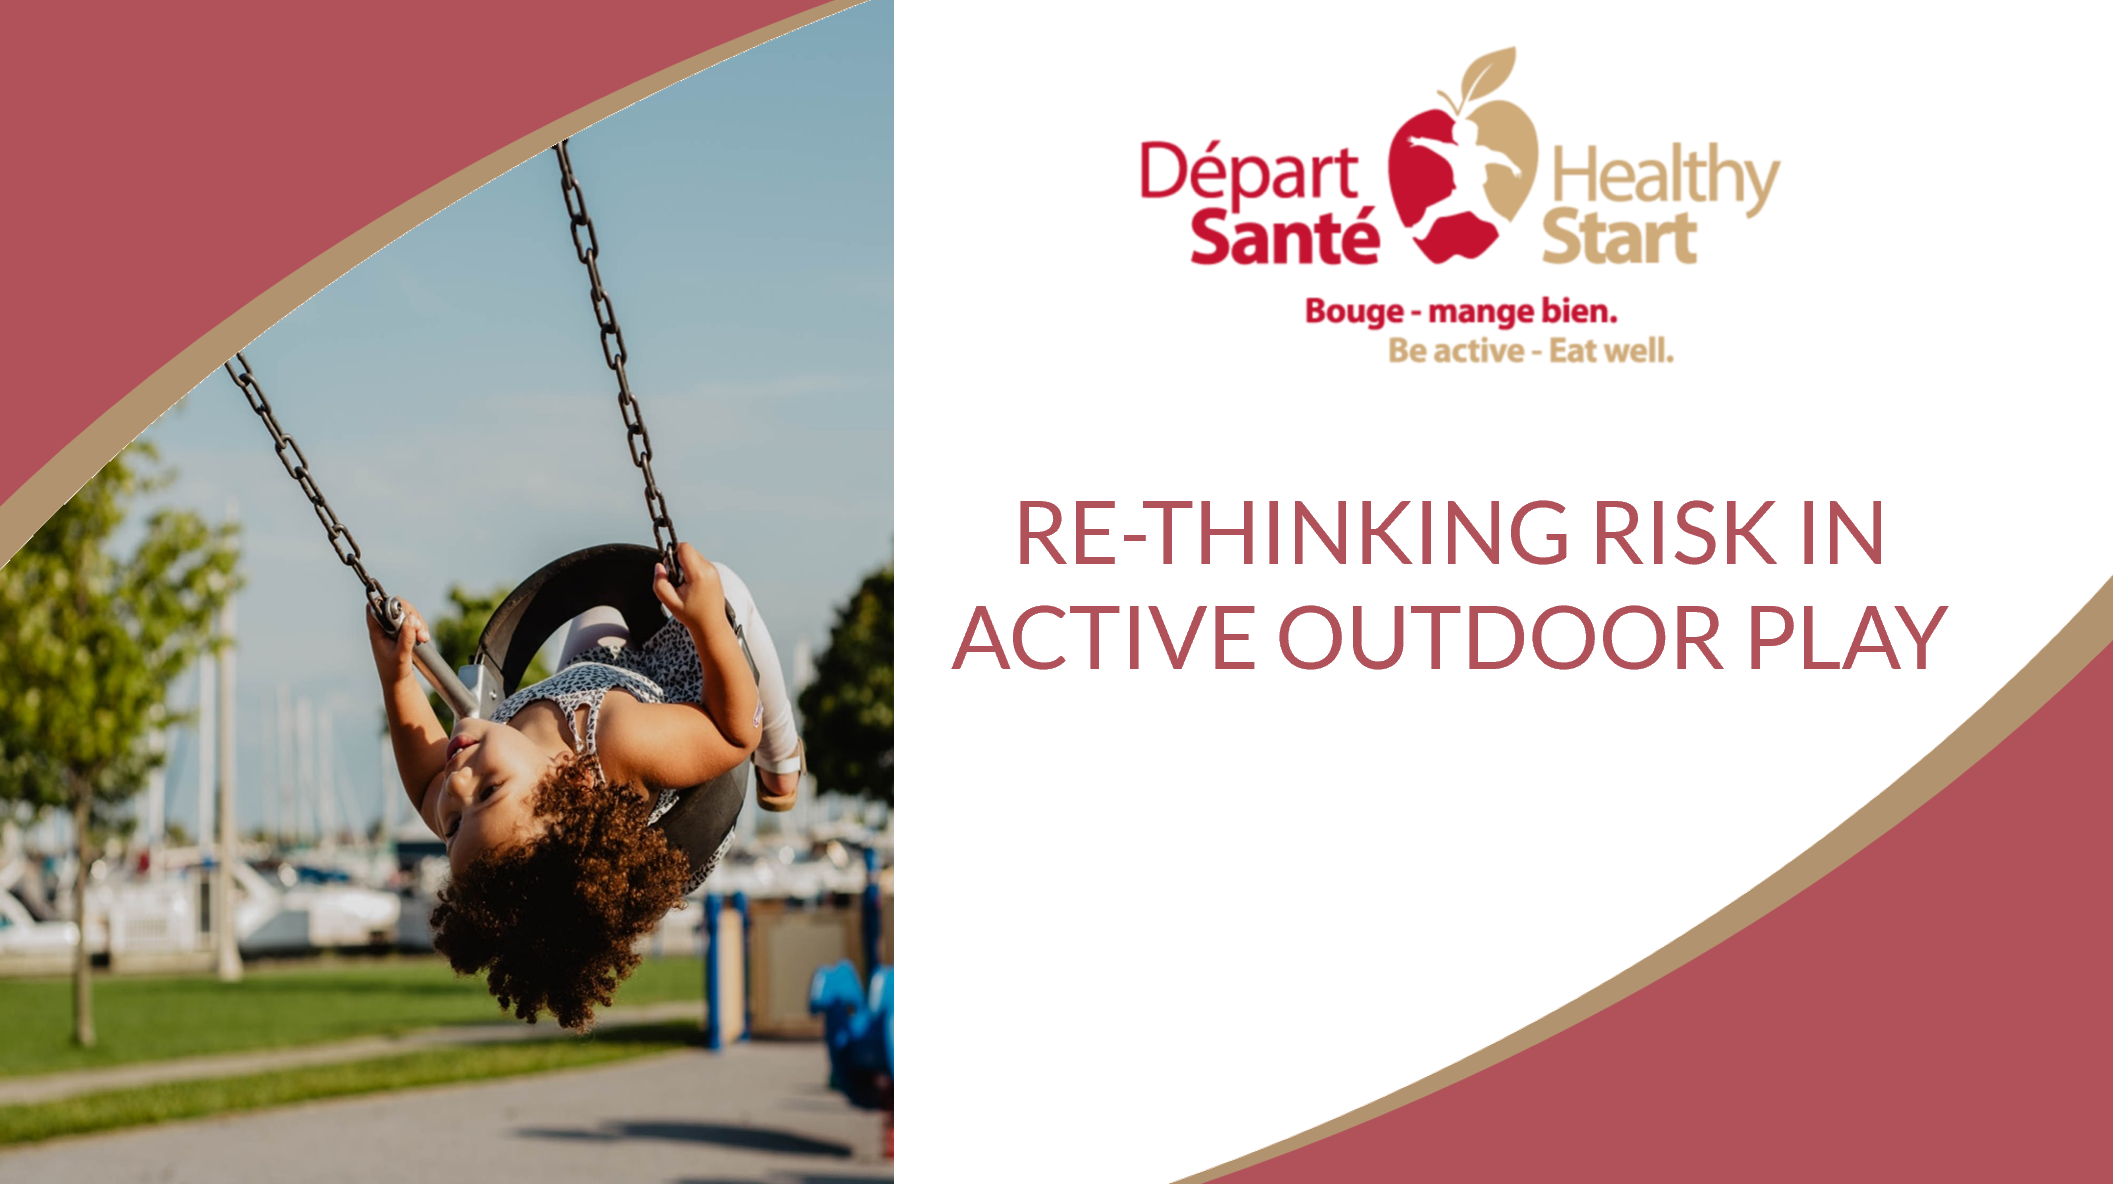 Re-thinking risk in active outdoor play picture